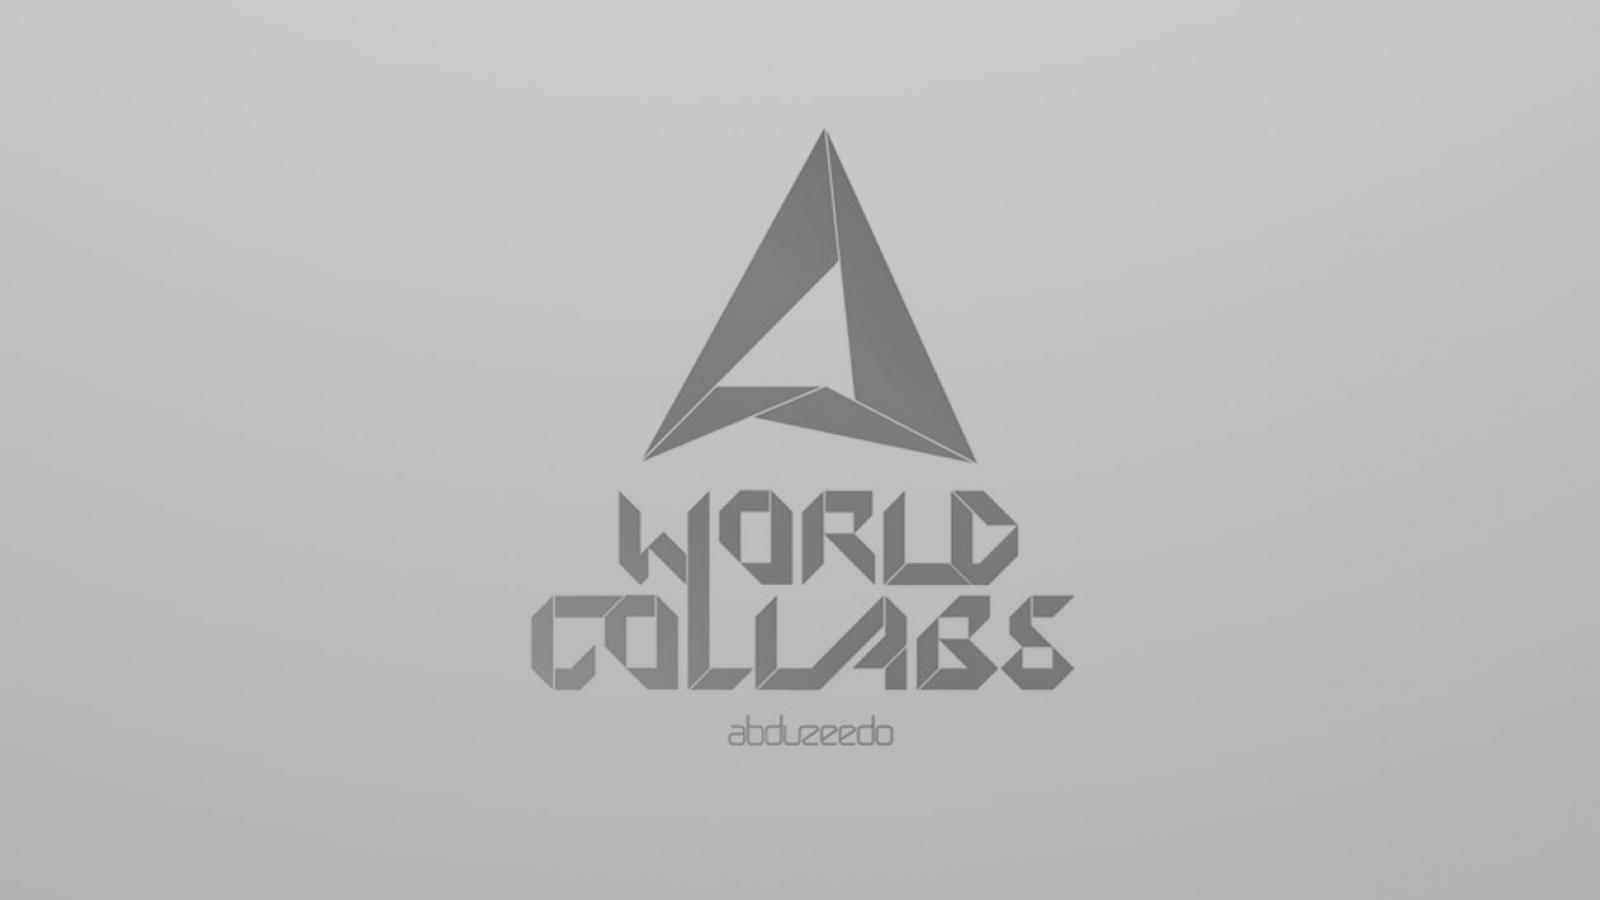 The World Collabs #8 - Human Nature 84